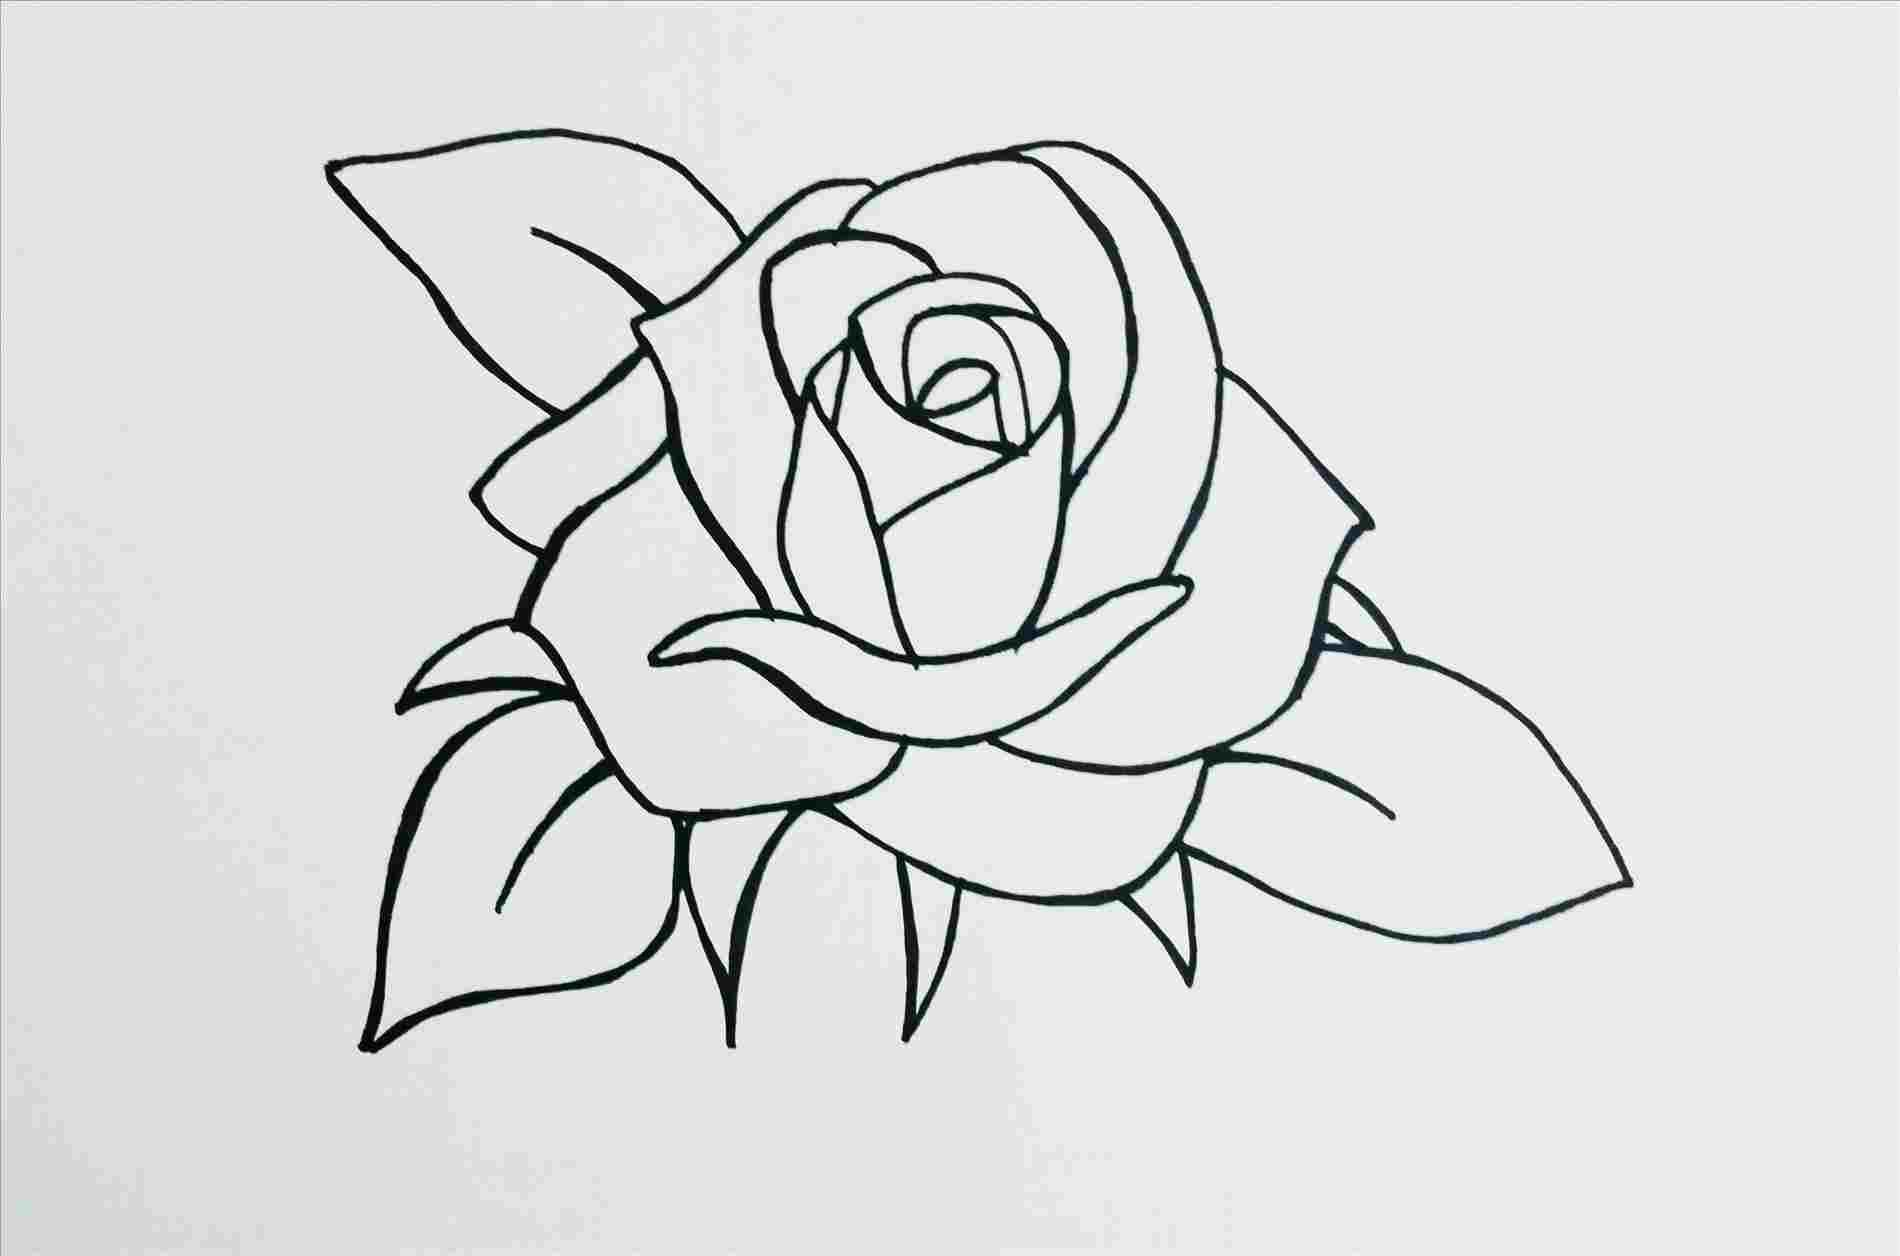 Cute And Pretty Easy Drawings Of Hearts Step By For Beginners Flowers Nature Artfairsinternational Rose Drawing Simple Pretty Easy Drawings Roses Drawing